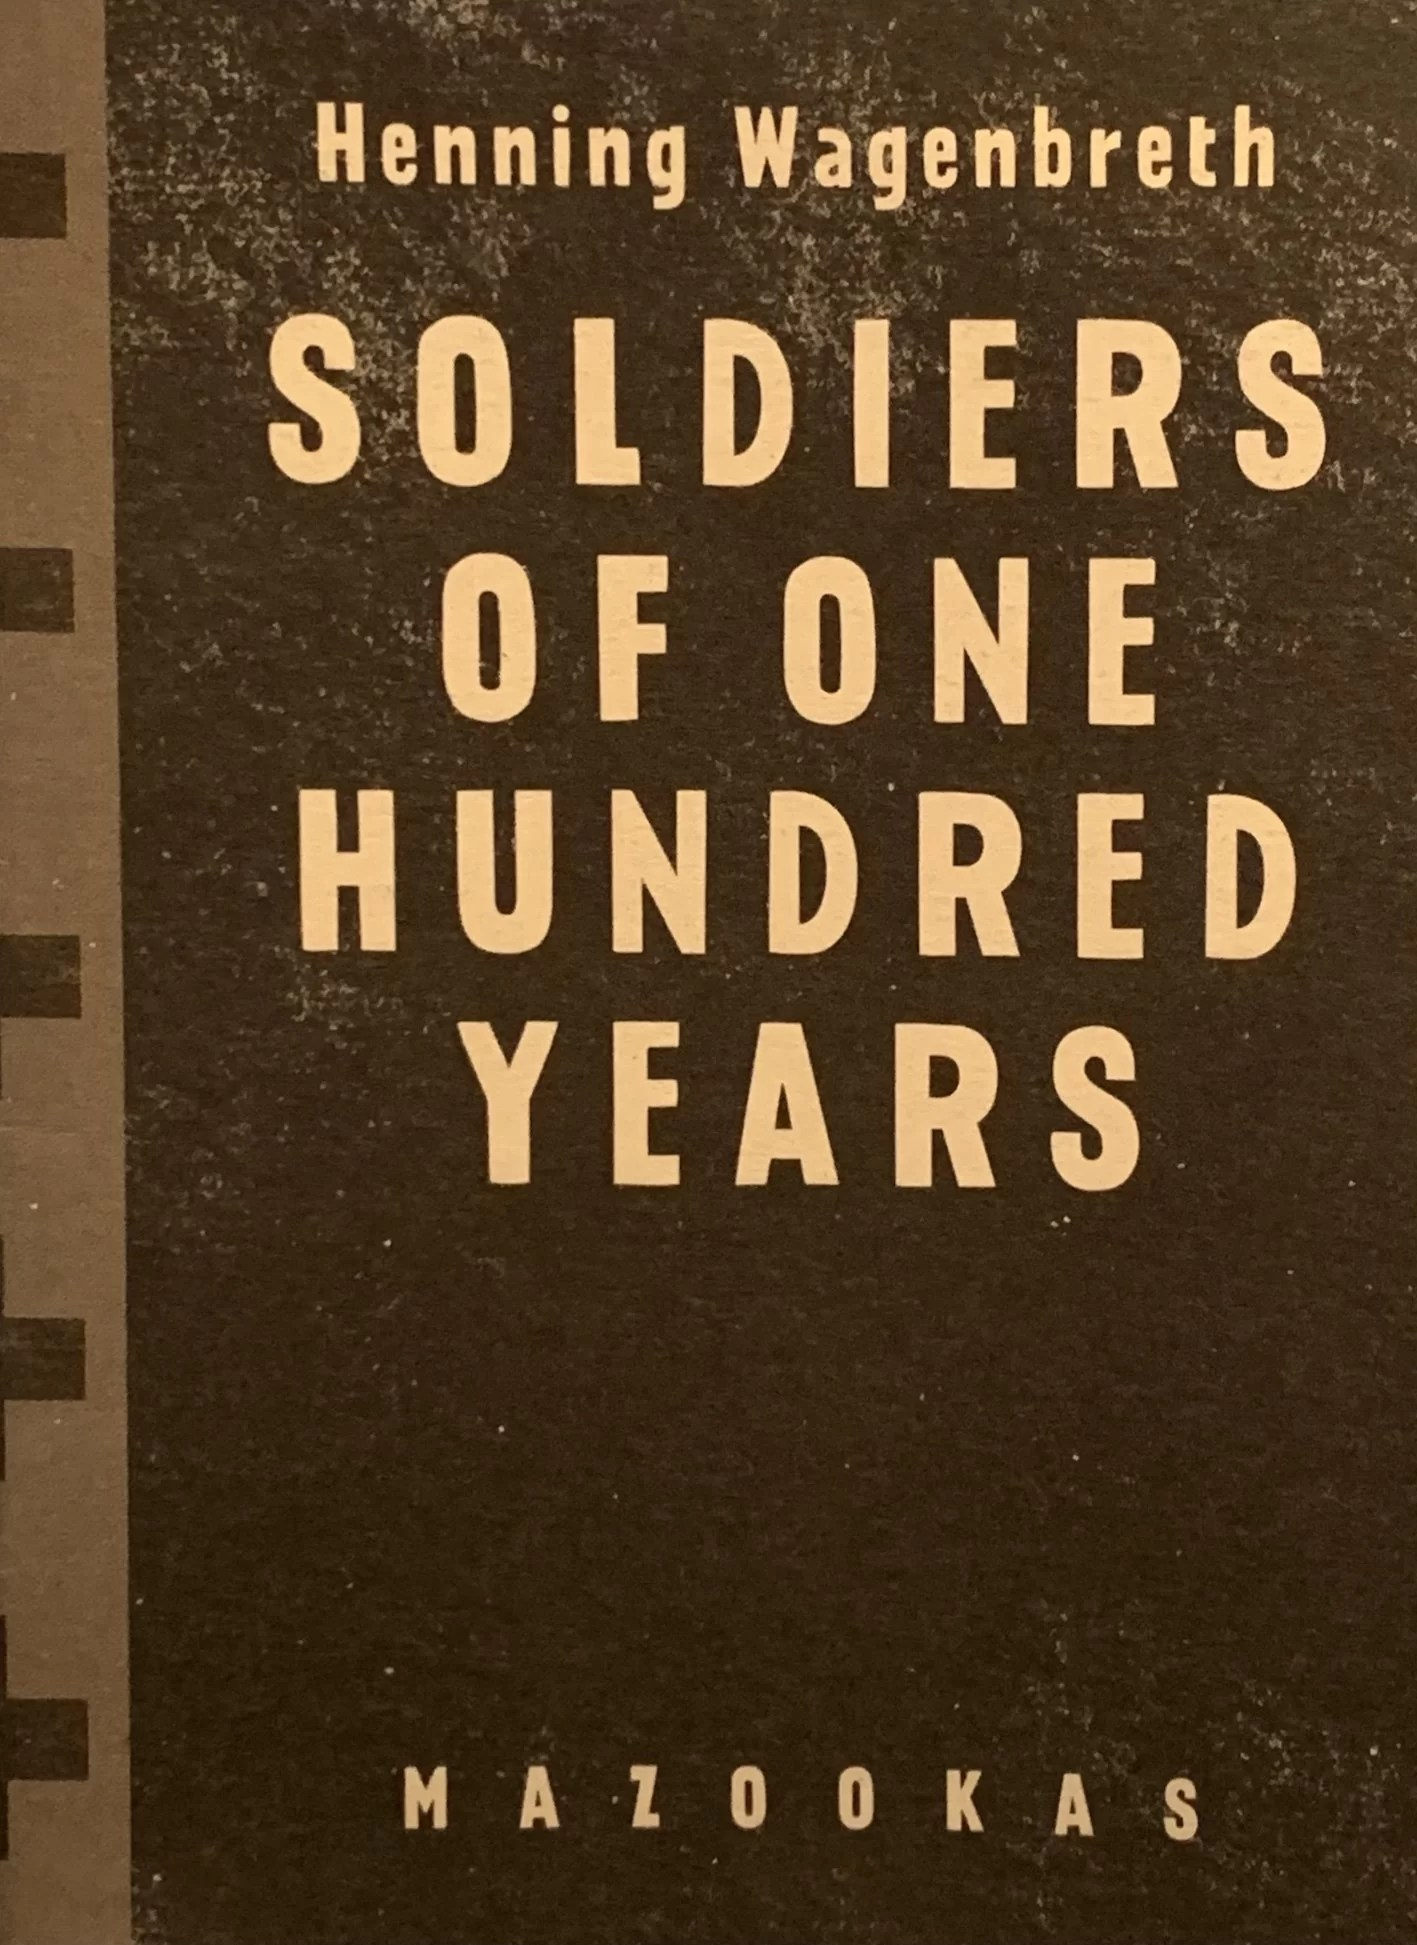 La Increíble, SOLDIERS OF ONE HUNDRED YEARS, HENNING WAGENBRETH